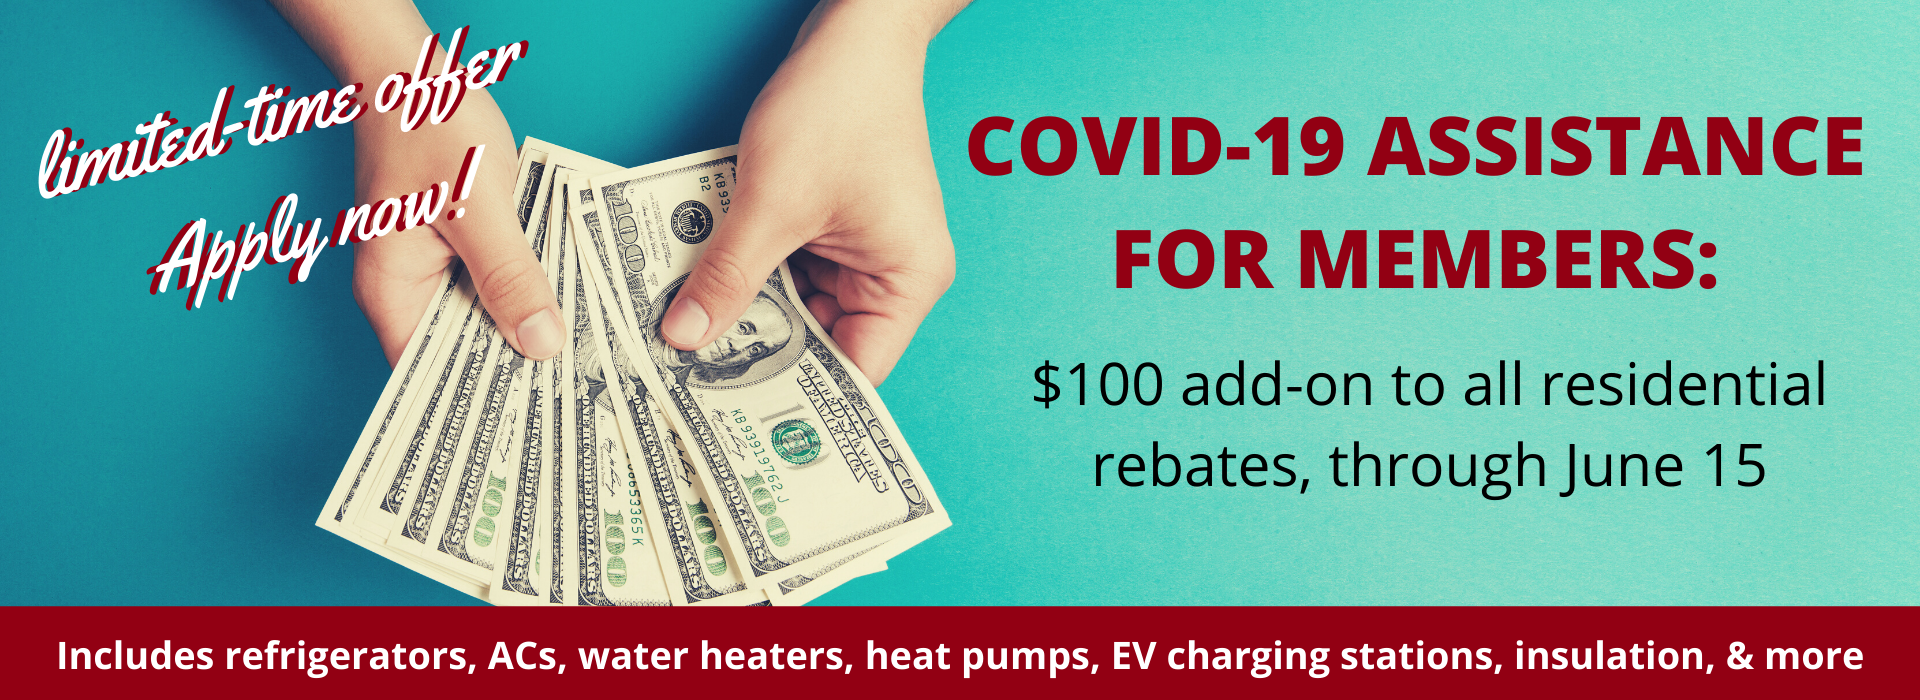 Get an extra $100 in rebates through June 15 for COVID-19 assistance from your co-op